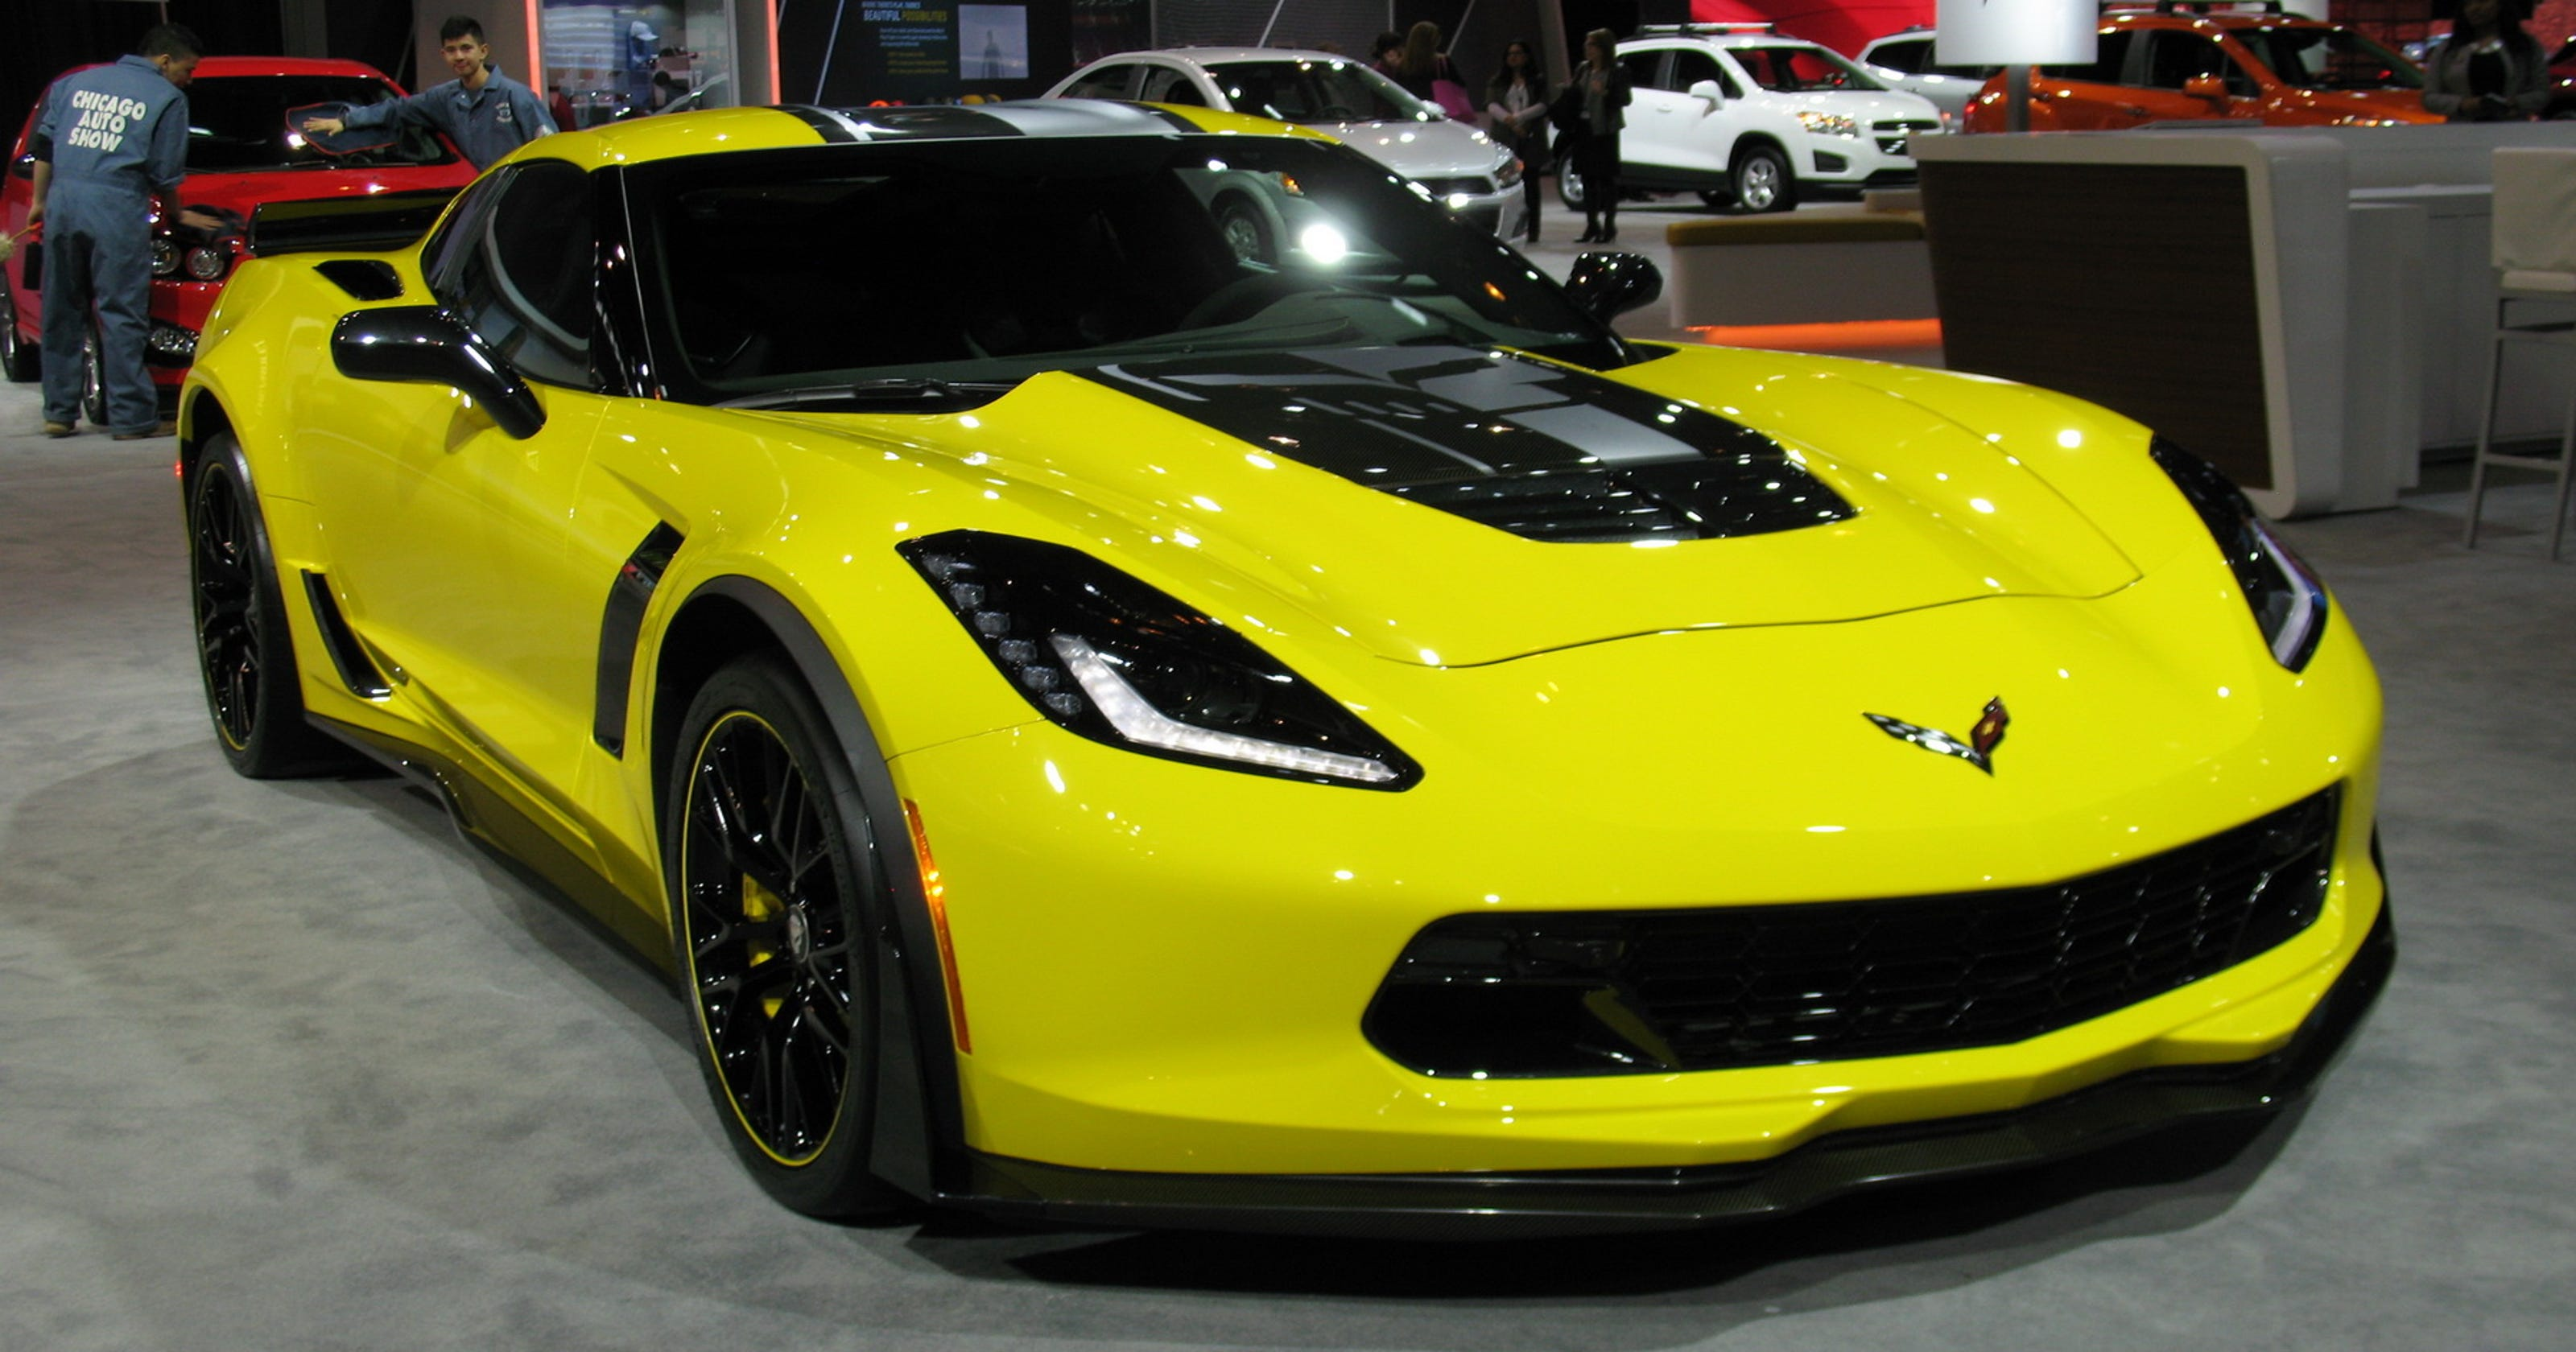 2016 Chevrolet Corvette Z06 fast & furious